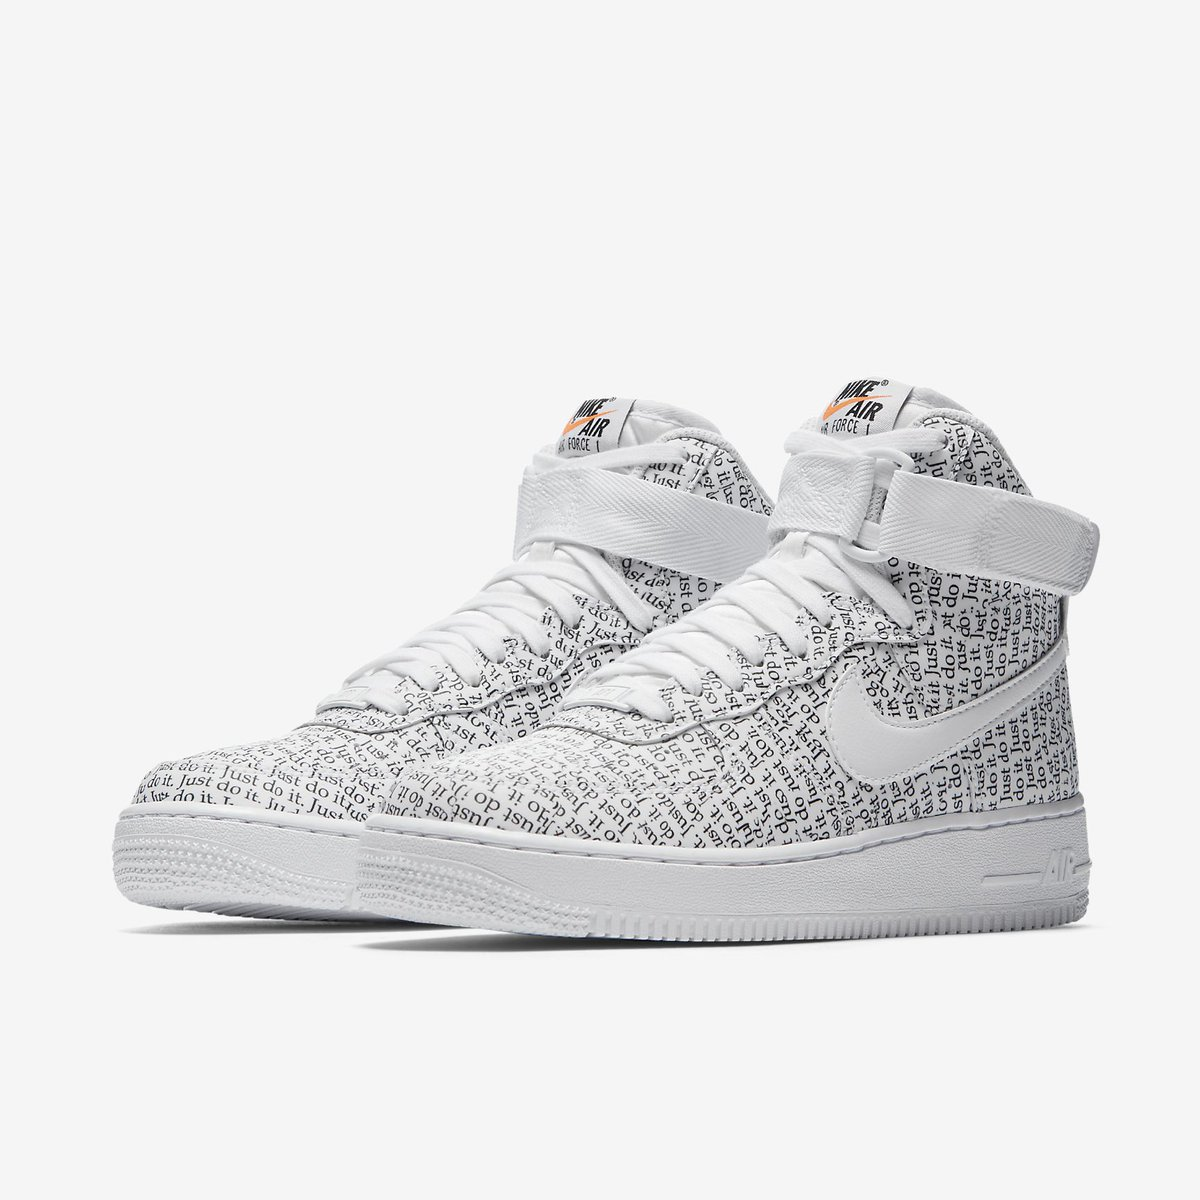 hot sale online 91075 68ba3 Nike Air Force 1 High LX Just Do It Pack White Womens AO5138-100 Live  Now!!! Shop From Nike http   bit.ly 2IwK9mI Offspring http   bit.ly 2IweZMc  ...